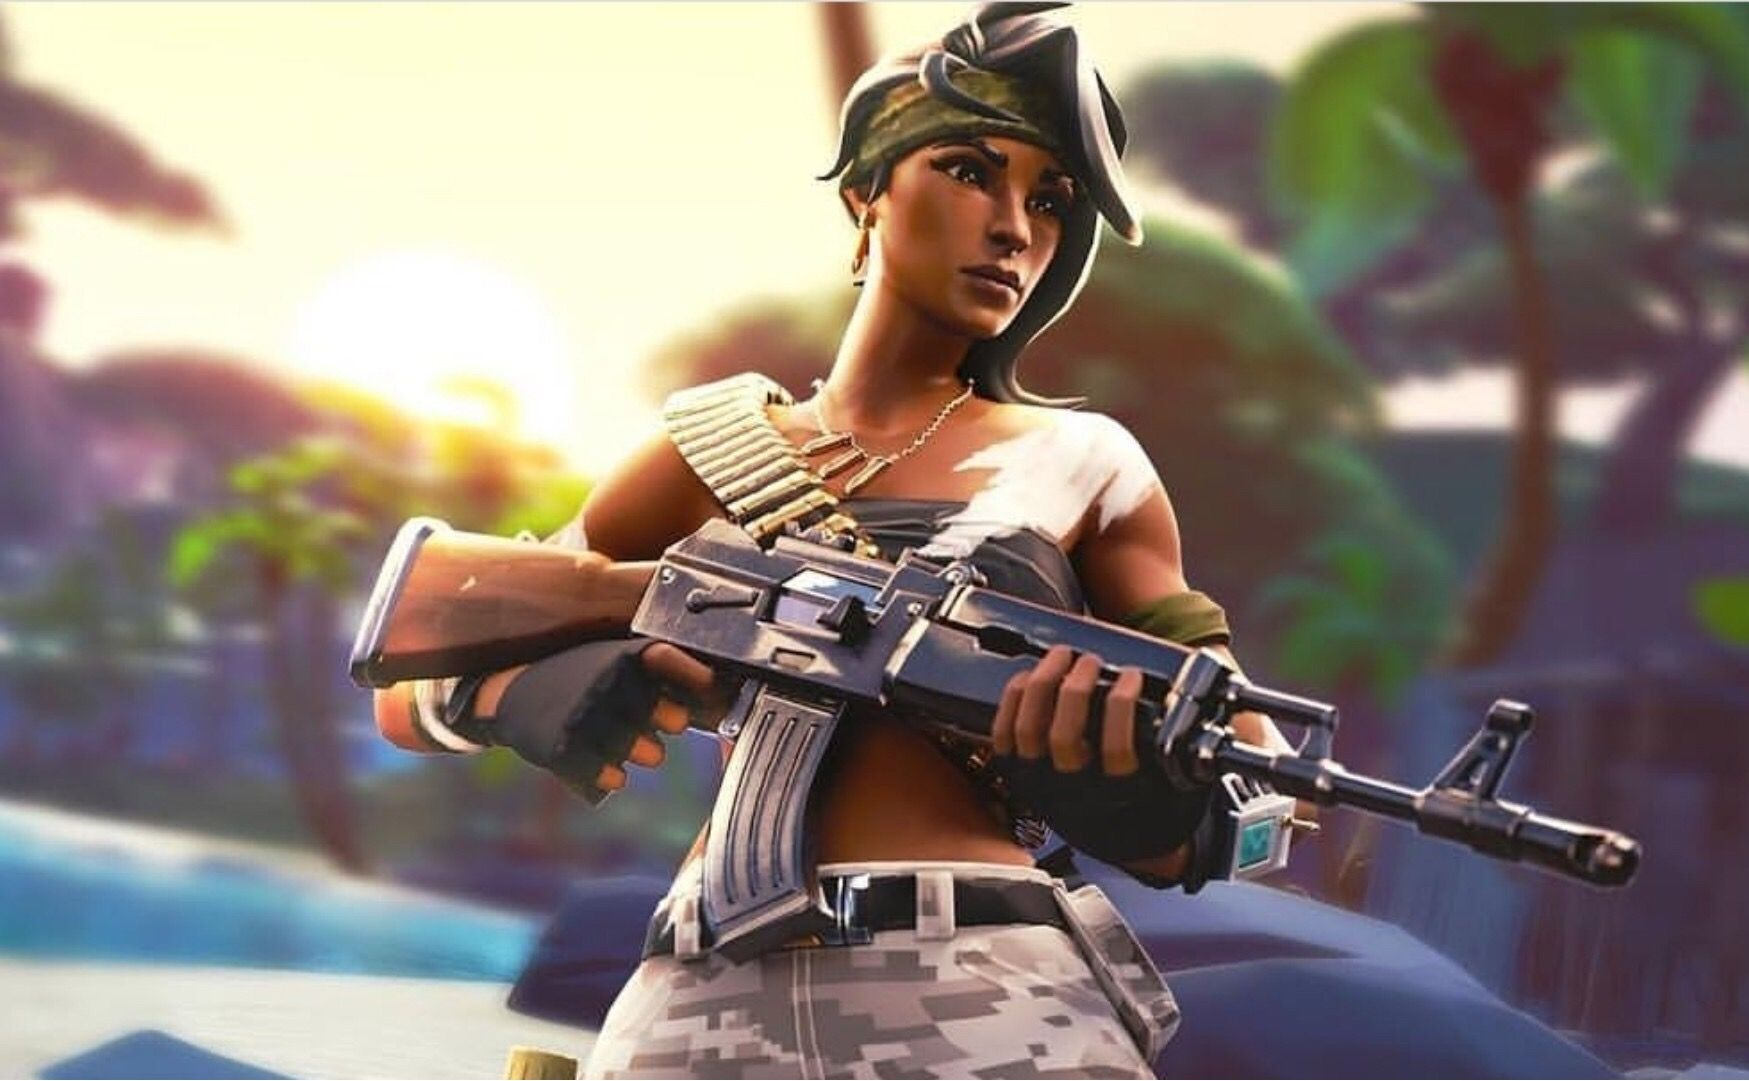 Freetoedit Fortnite Thumbnail Remixed From Fuzion Gfx Photo Gaming Wallpapers Best Gaming Wallpapers